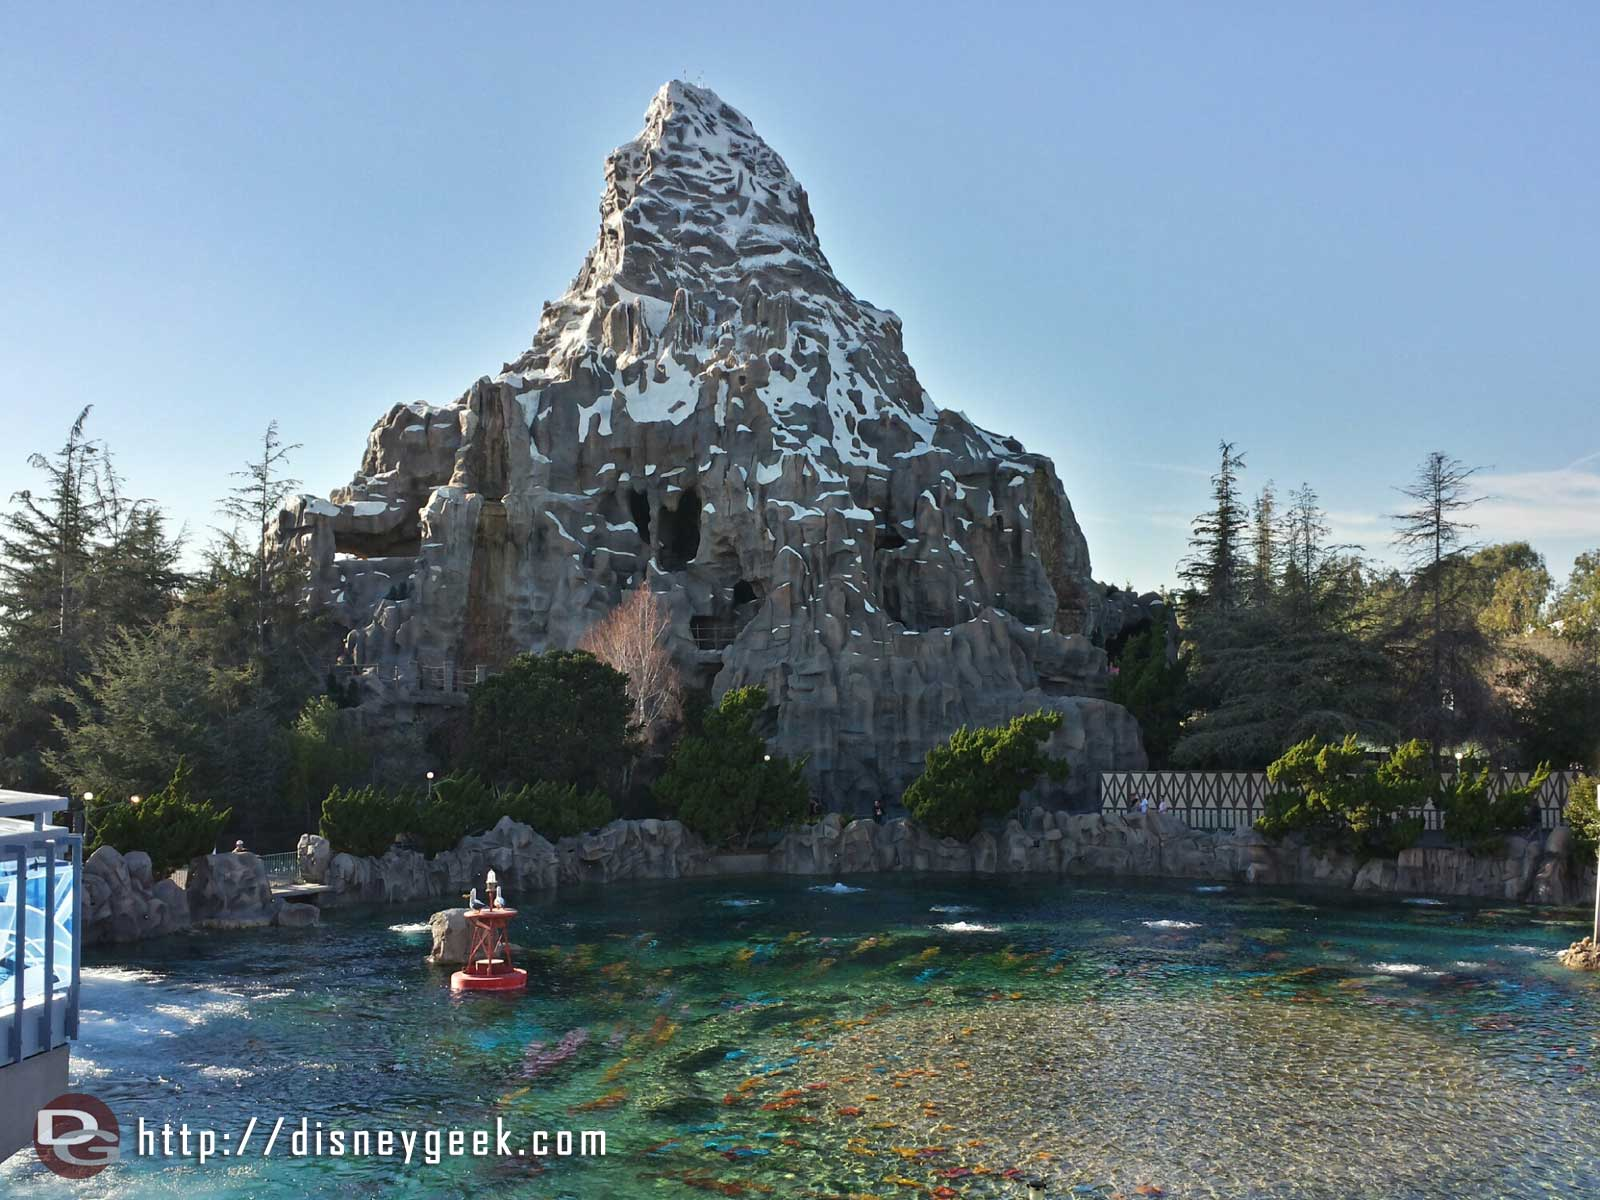 The Matterhorn from the Tomorrowland Monorail station